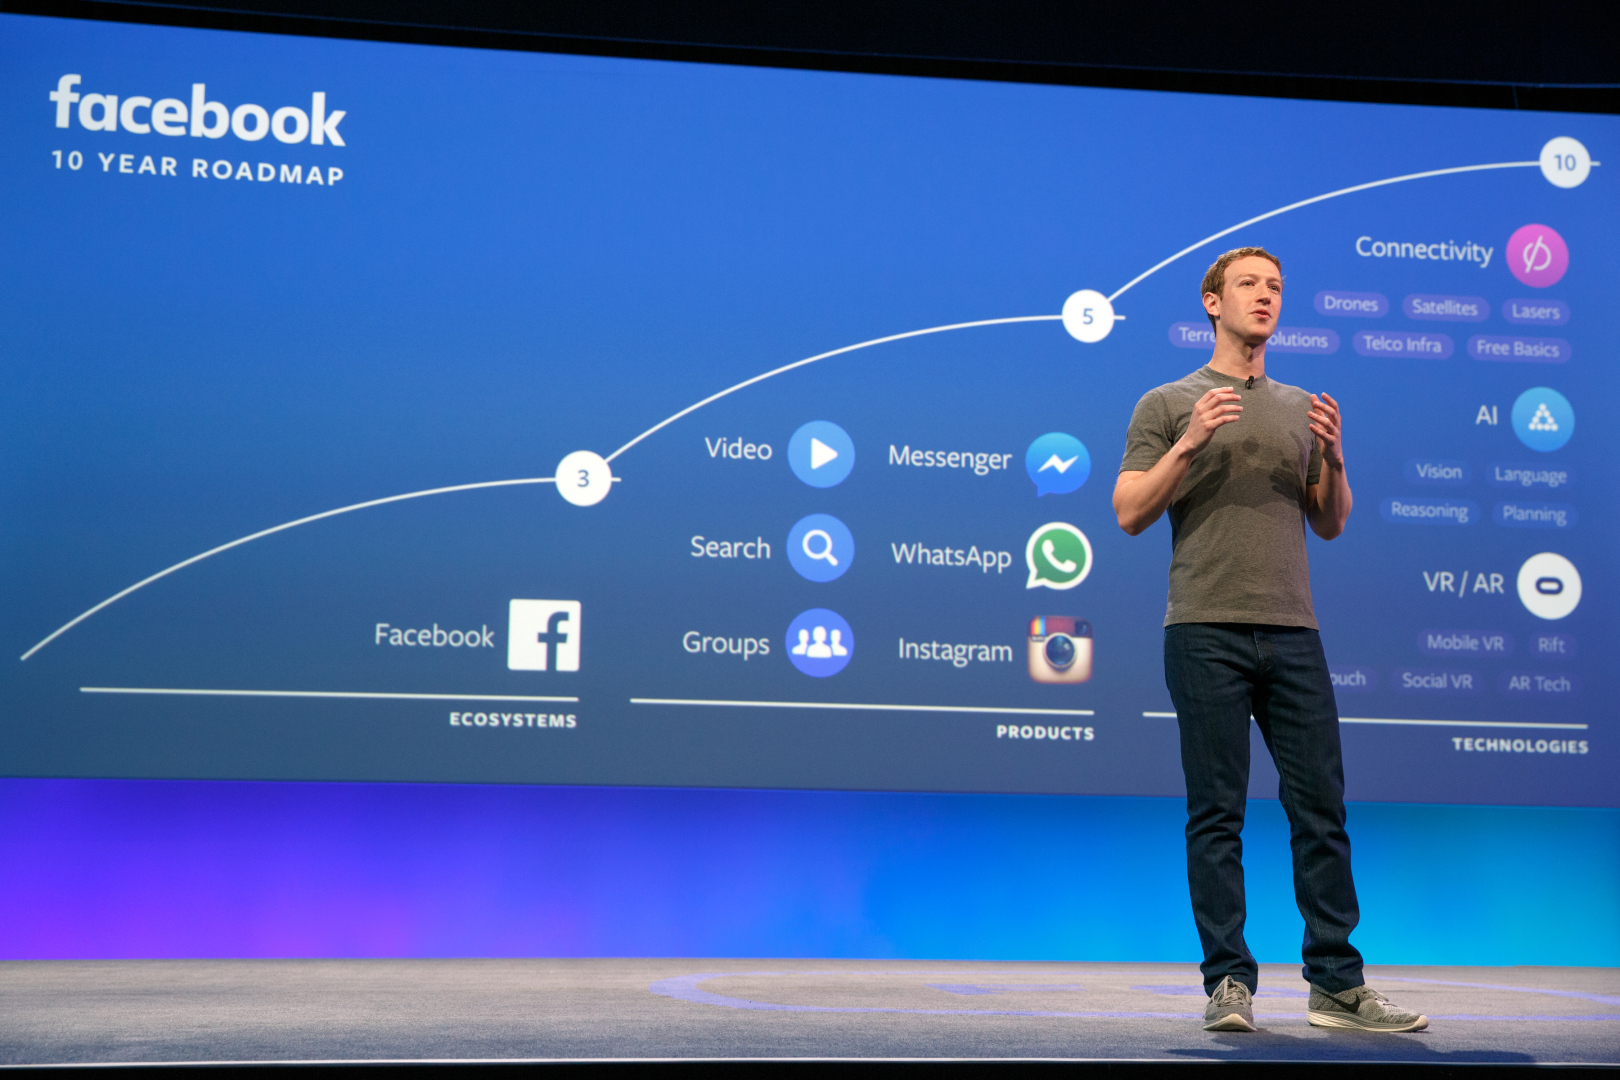 Facebook's Q3 Earnings